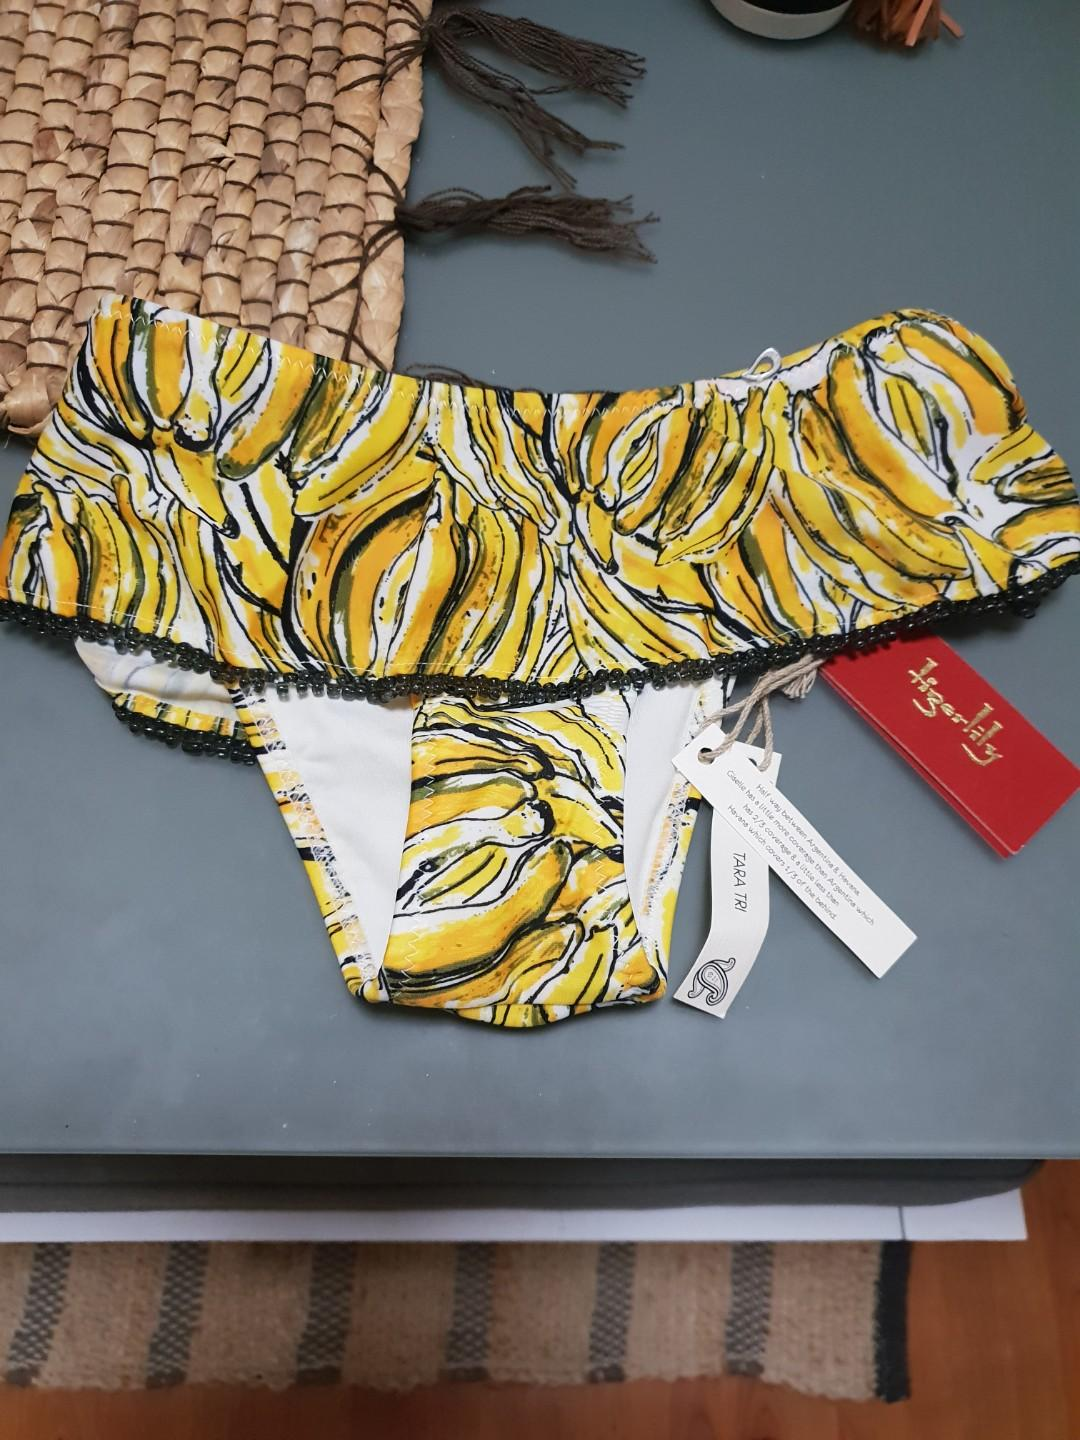 Tigerlilly bikini bottoms- brand new with tags and hygiene sticker in place